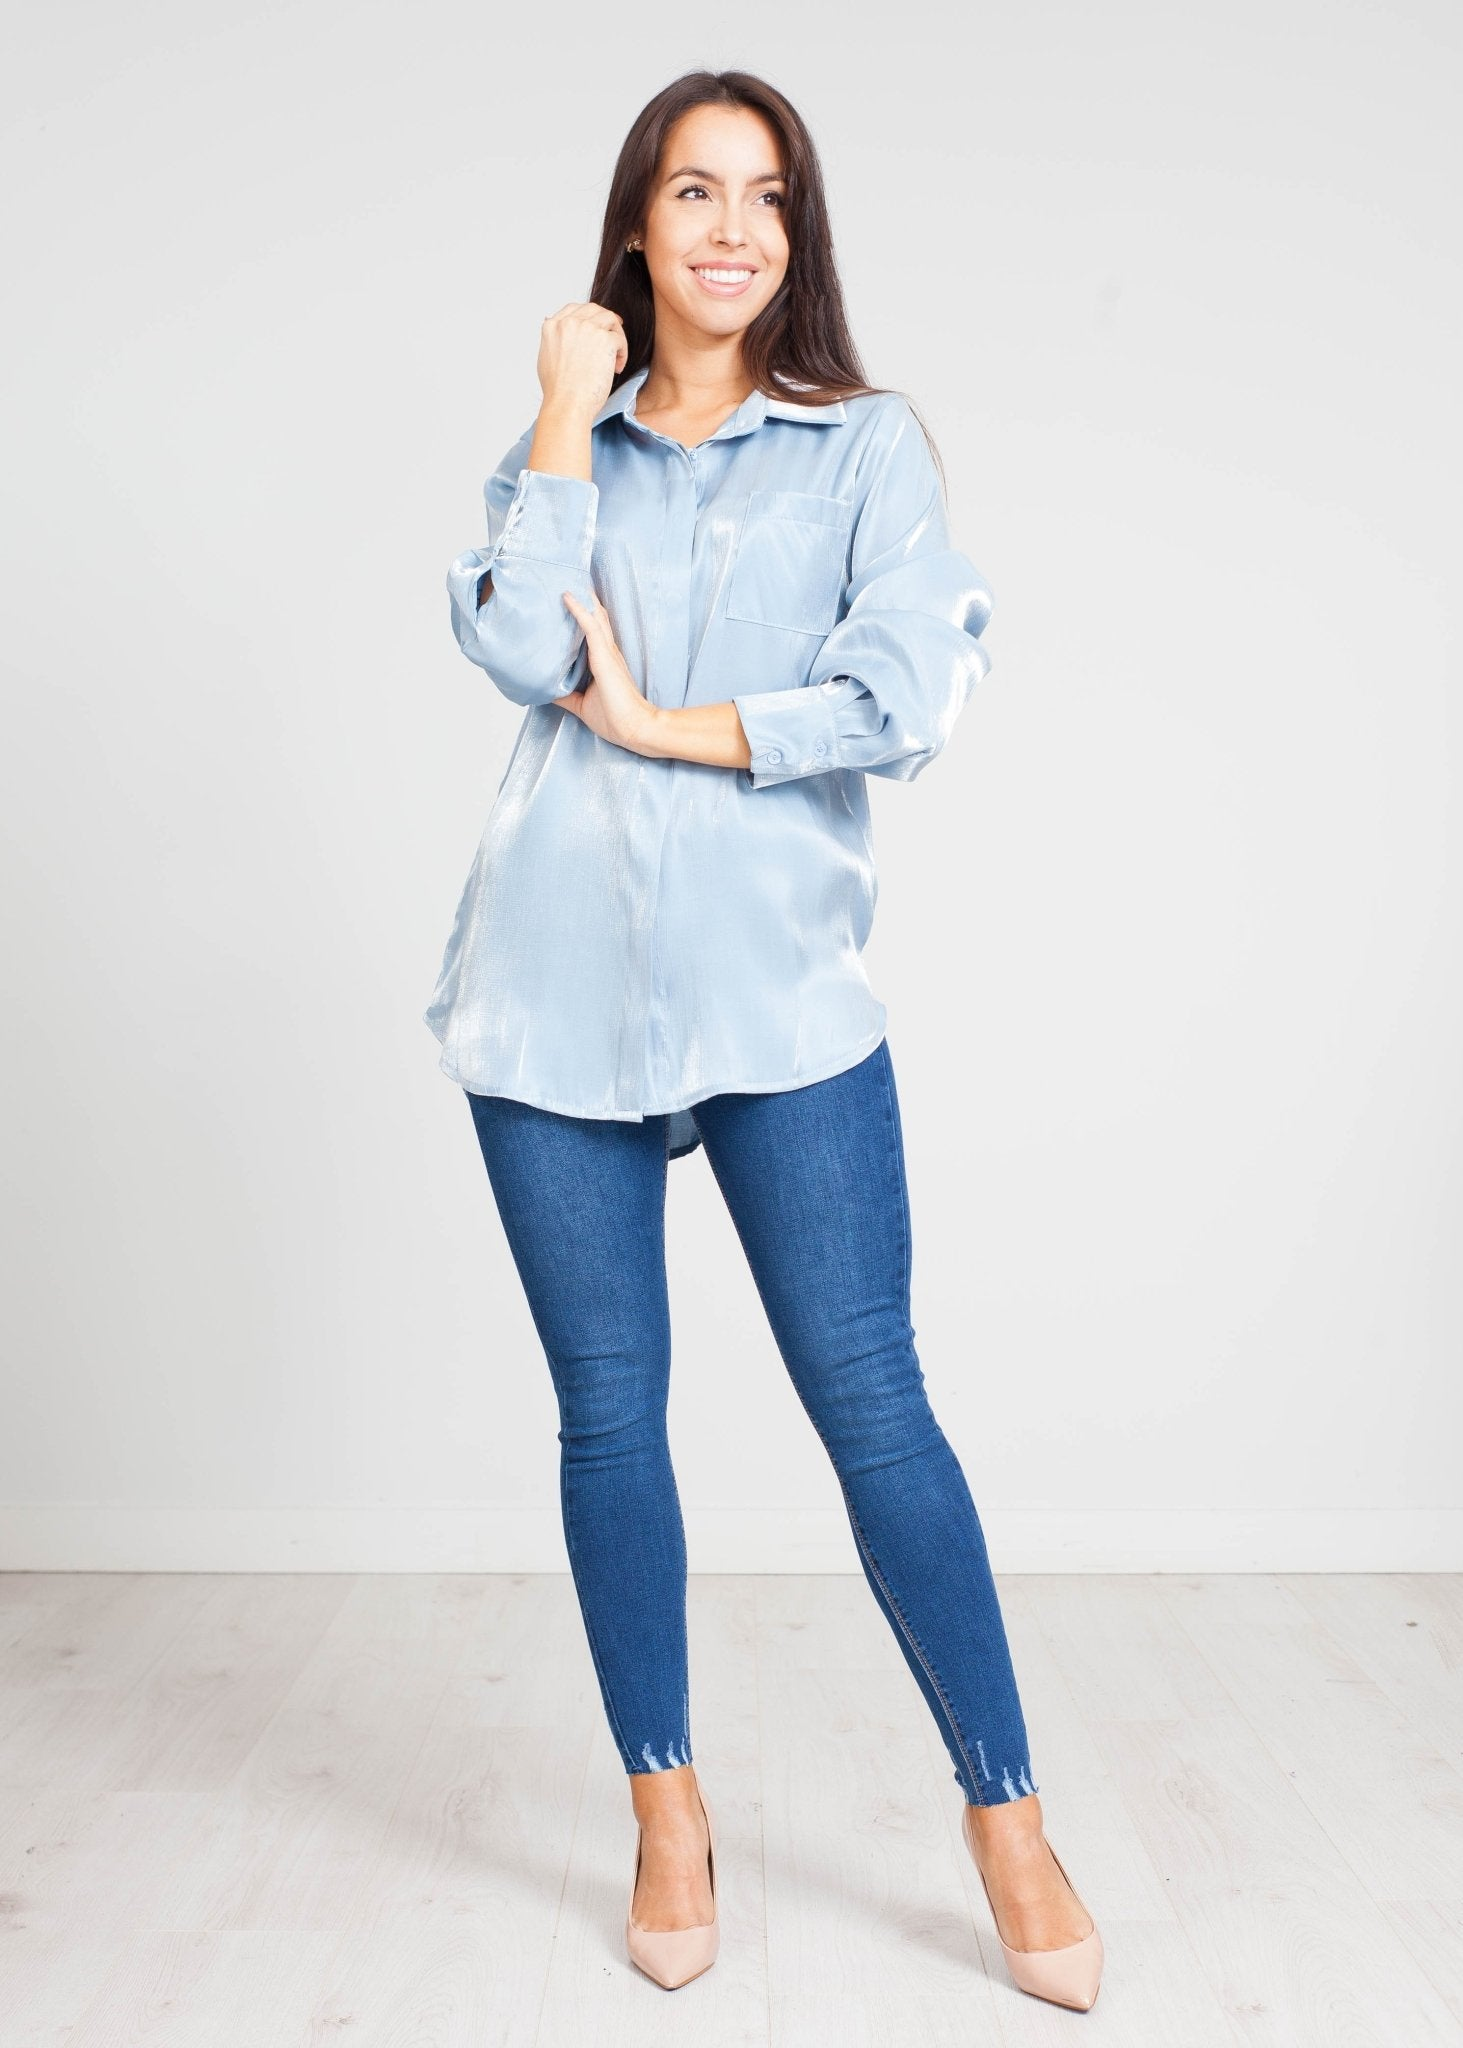 Indie Satin Shirt In Powder Blue - The Walk in Wardrobe